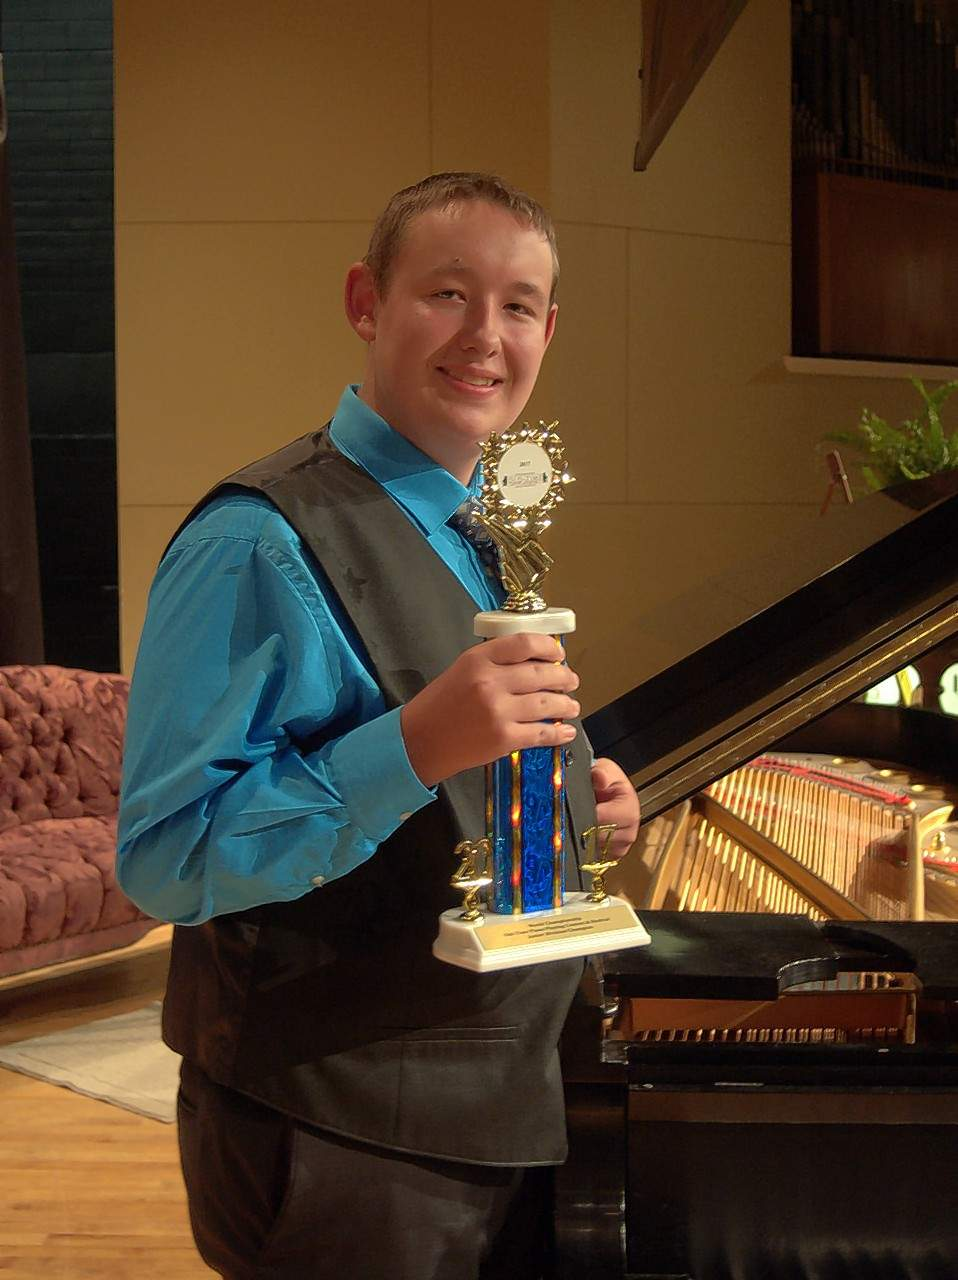 Nathan Beasley of Eldorado takes the top prize in the junior division of the 2017 Old-Time Piano Playing world championships